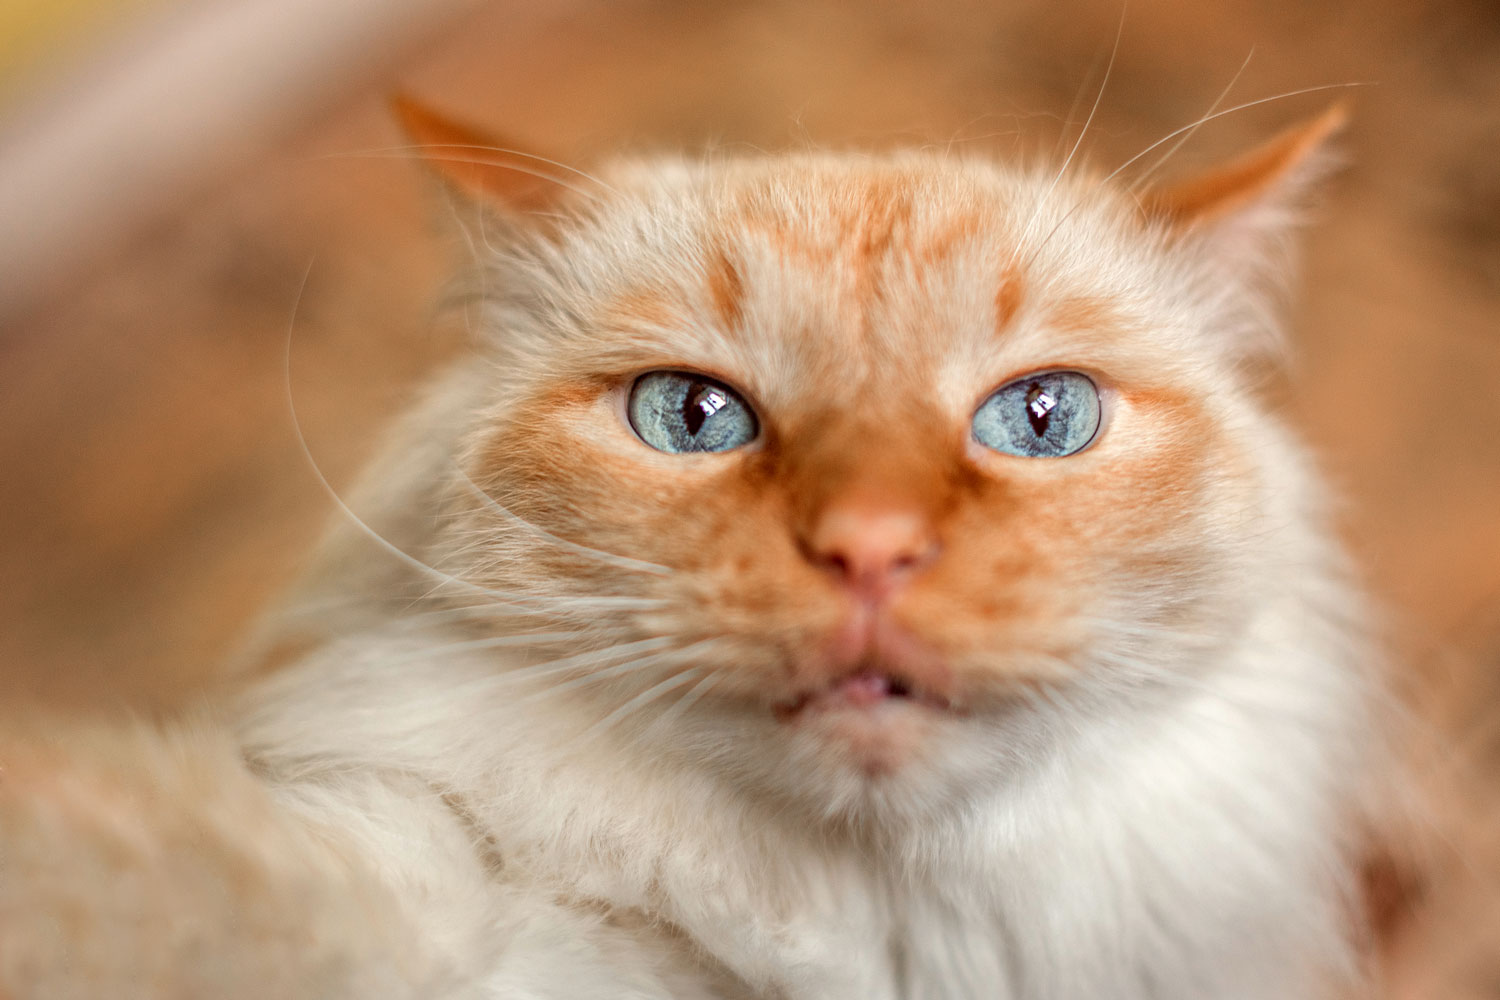 A red lynx point with blue eyes staring and holding a camera